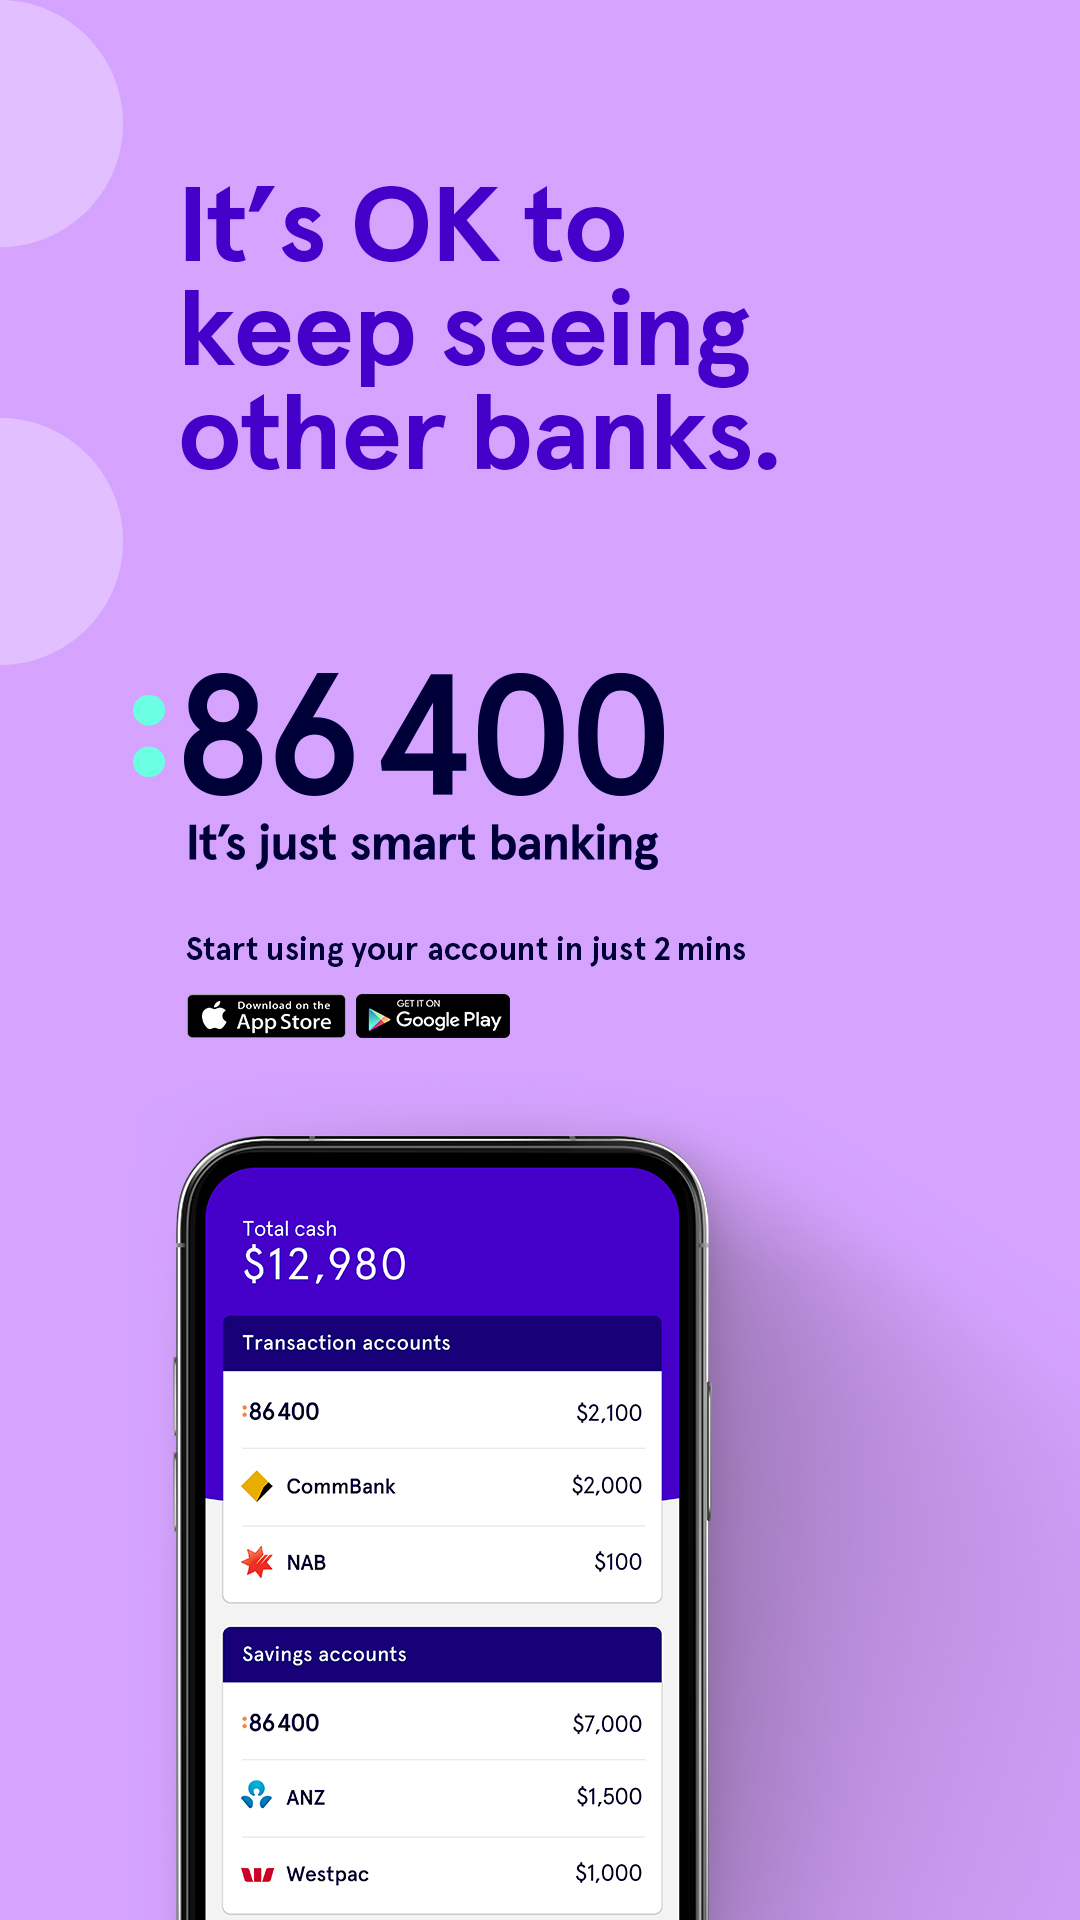 Australian smart bank 86 400 launches new 'It's Just Smart Banking' brand campaign via Bashful